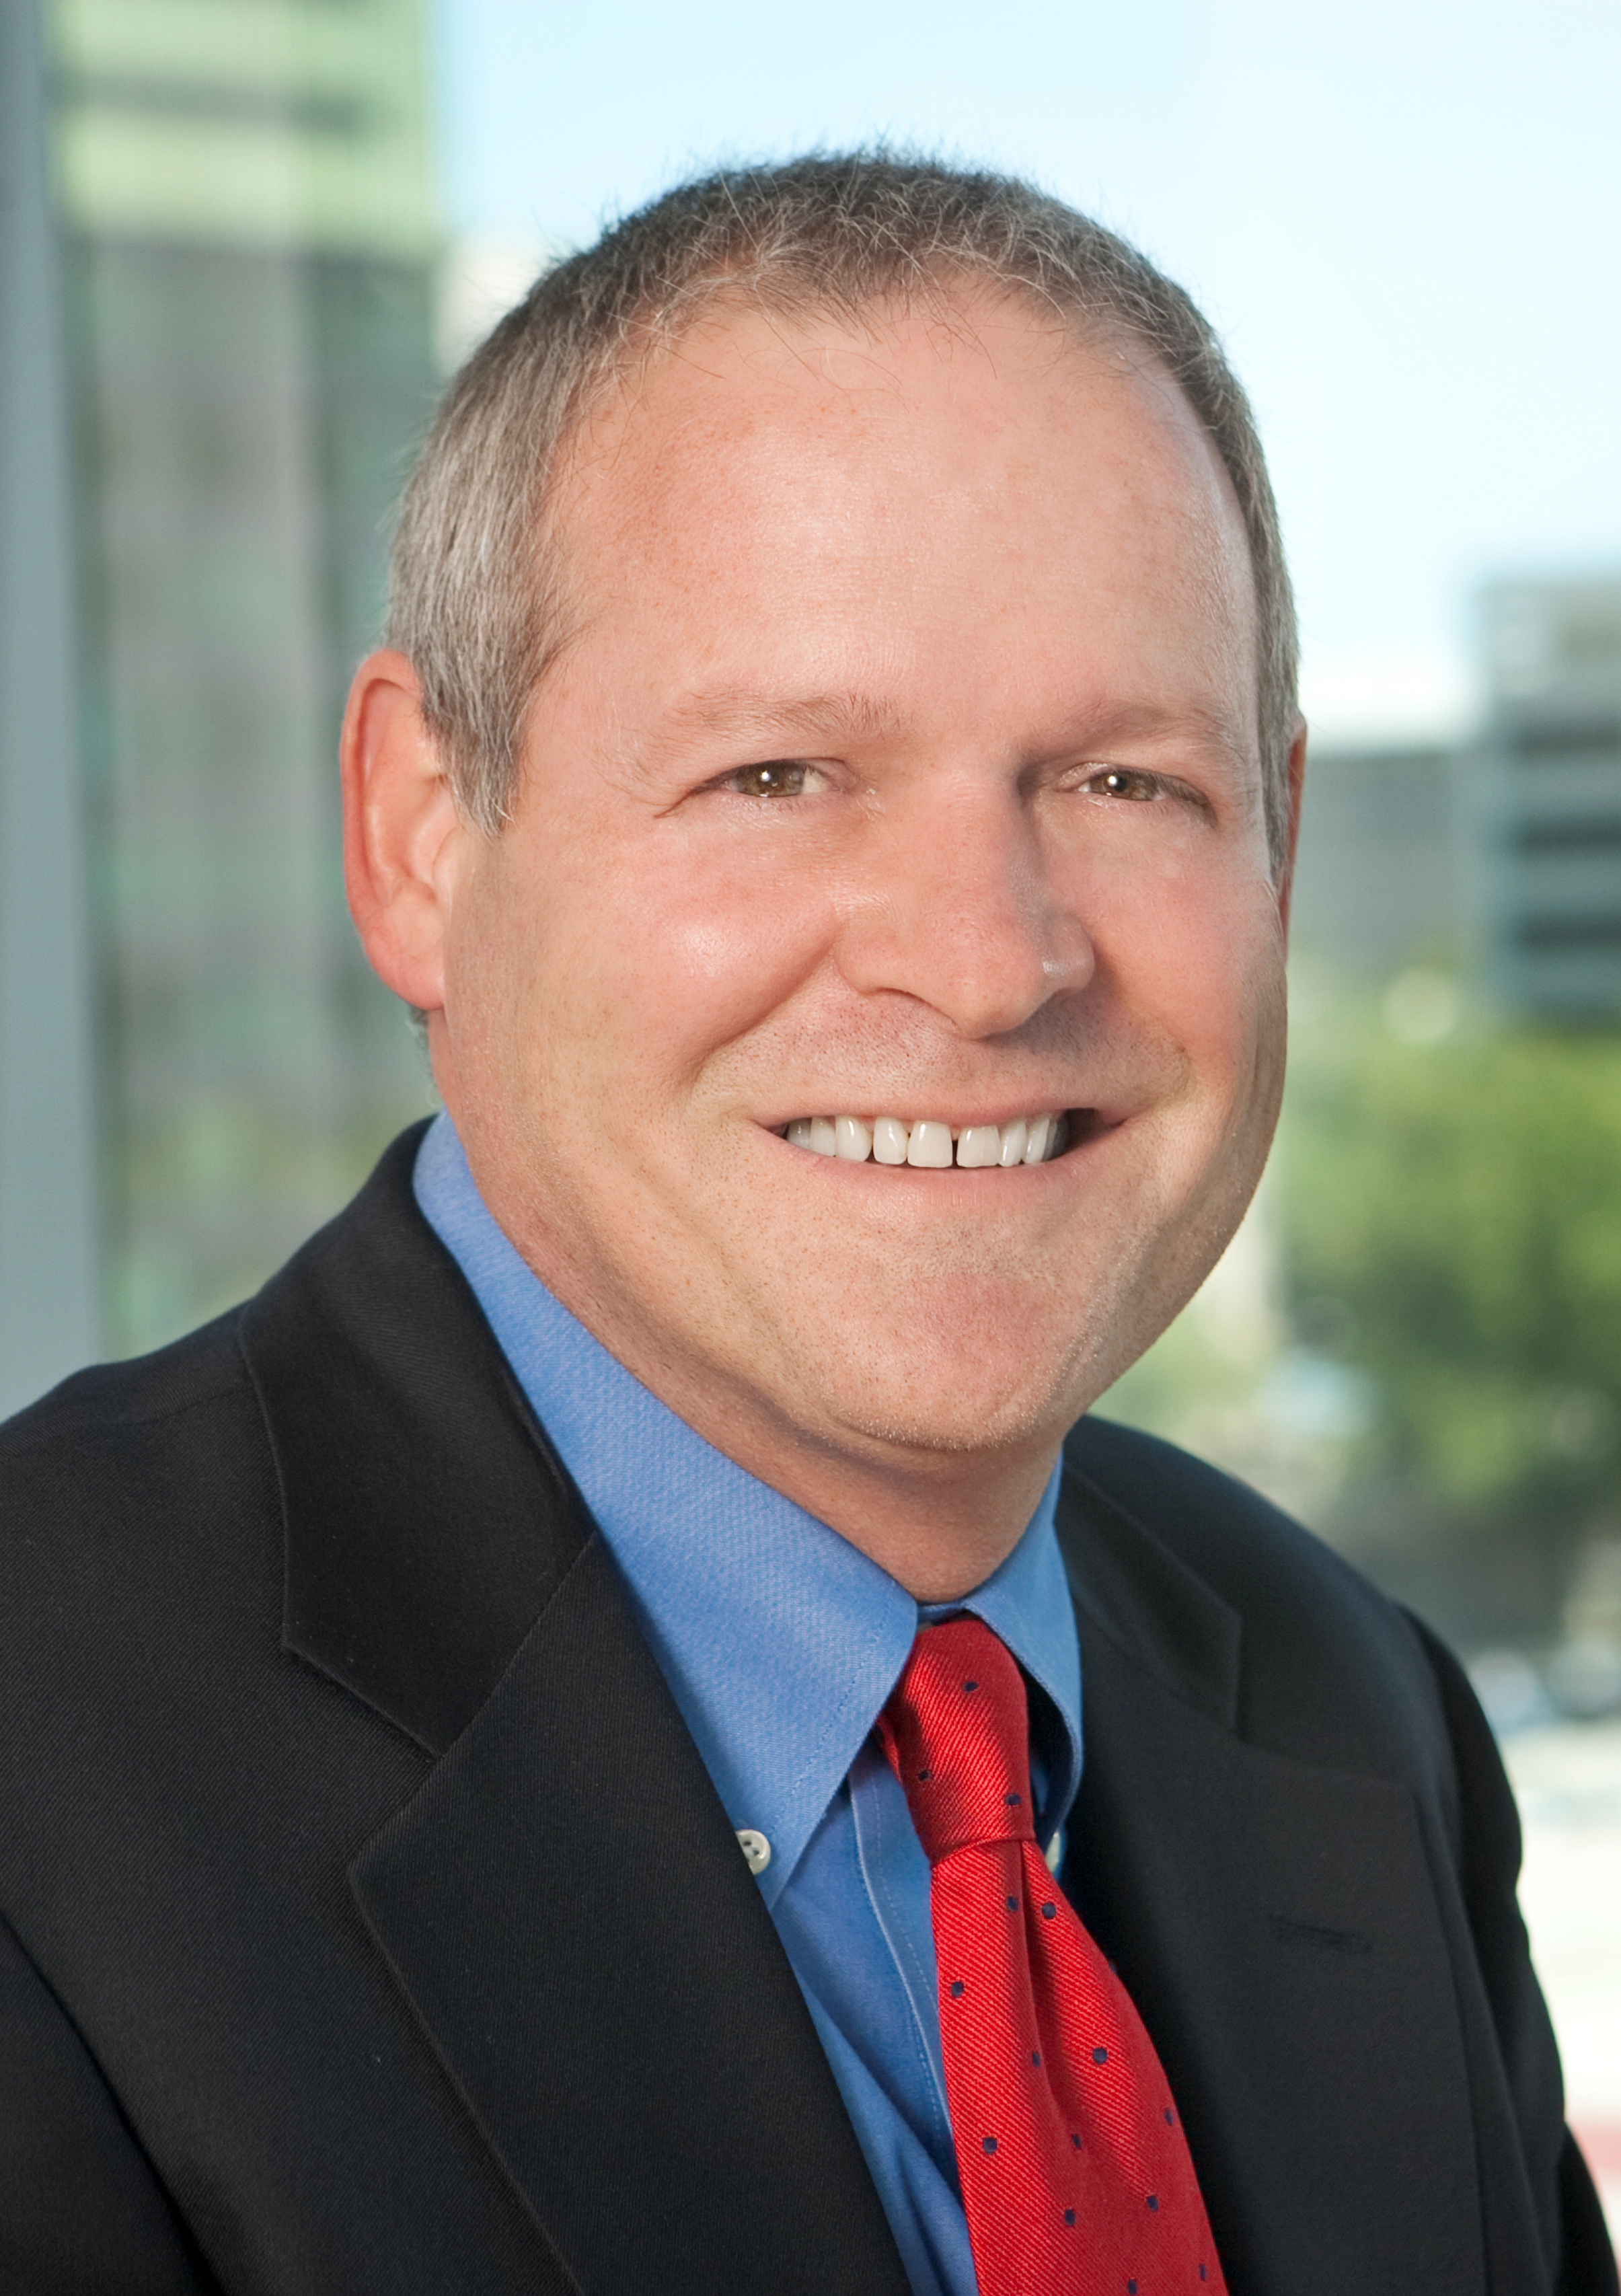 Paul Sallomi, U.S. and global technology sector leader at Deloitte LLP